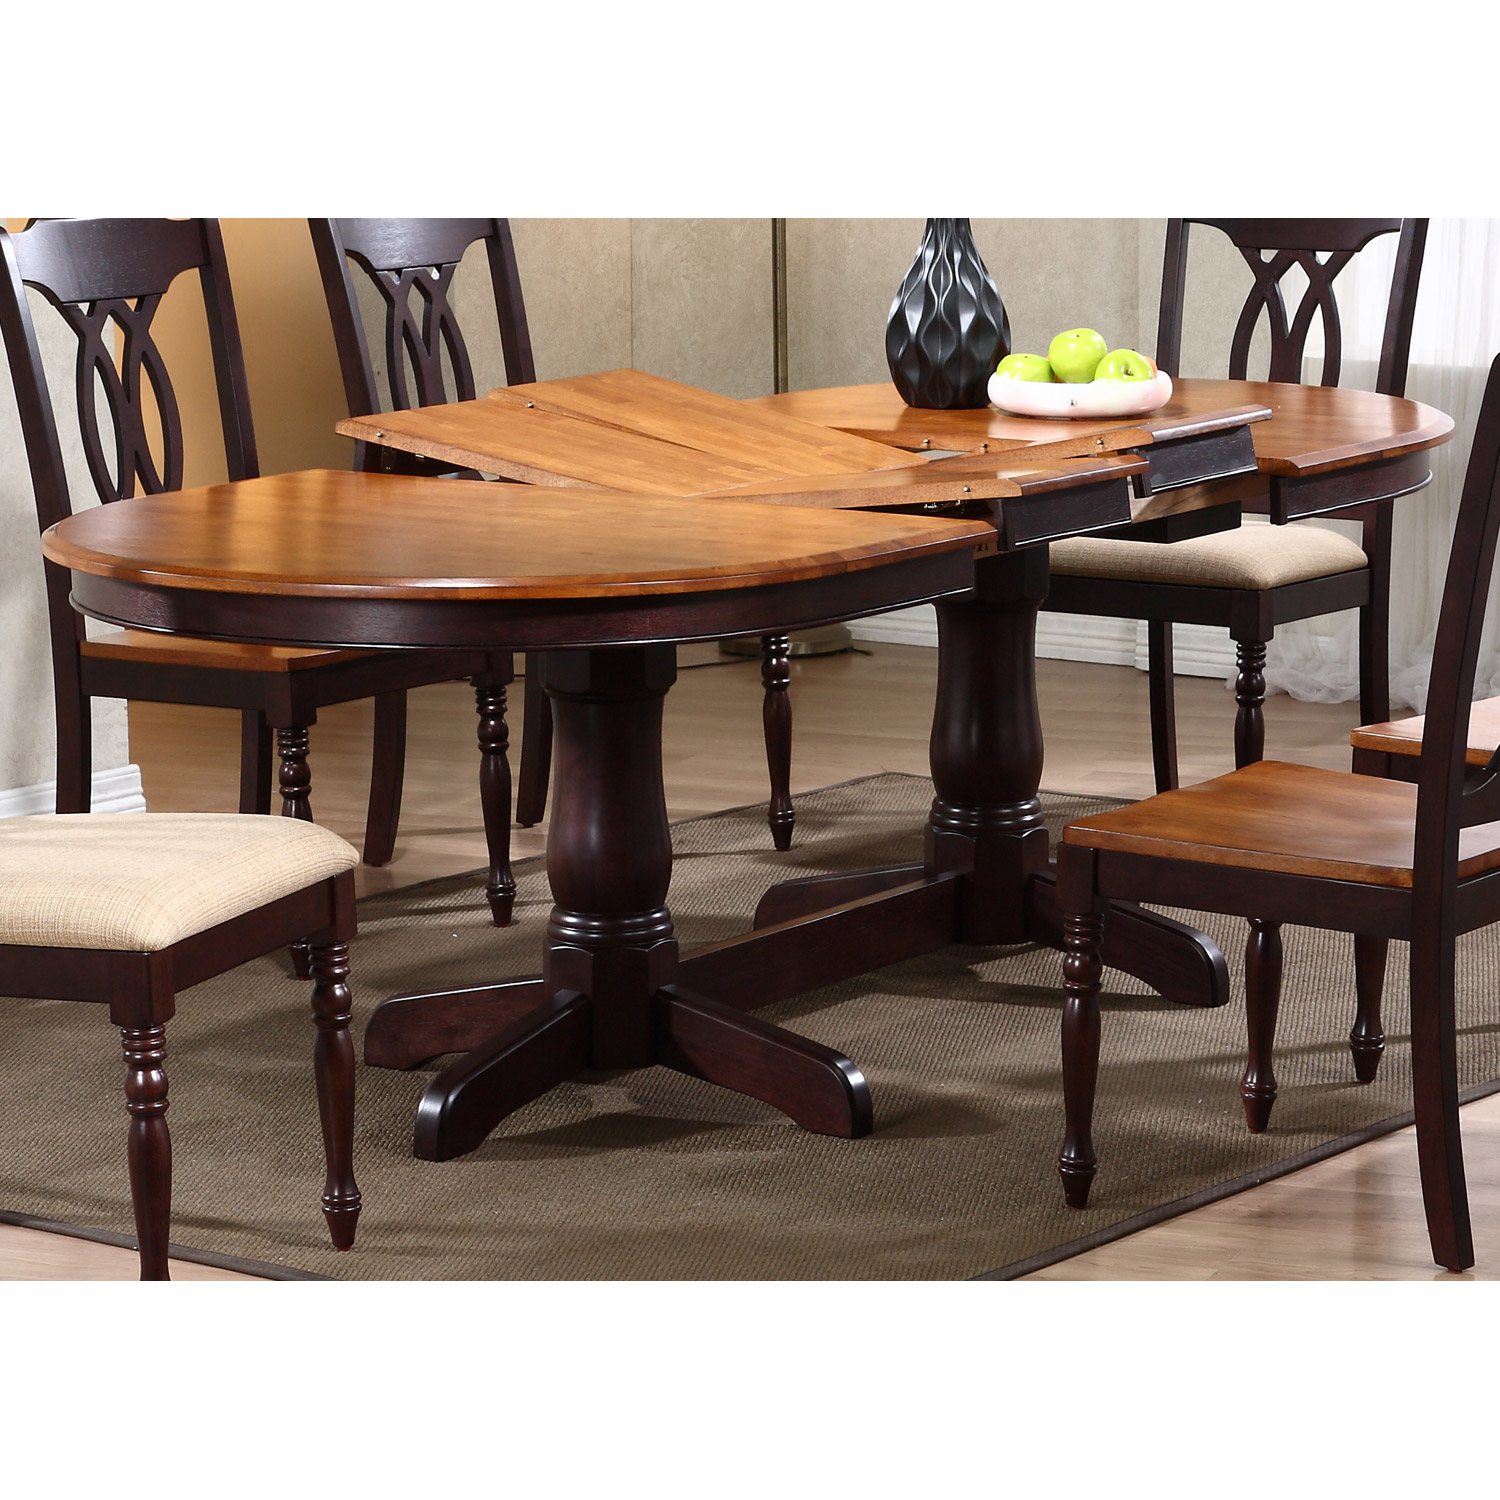 Oval Dining Room Table: Double Butterfly Leaf, Whiskey